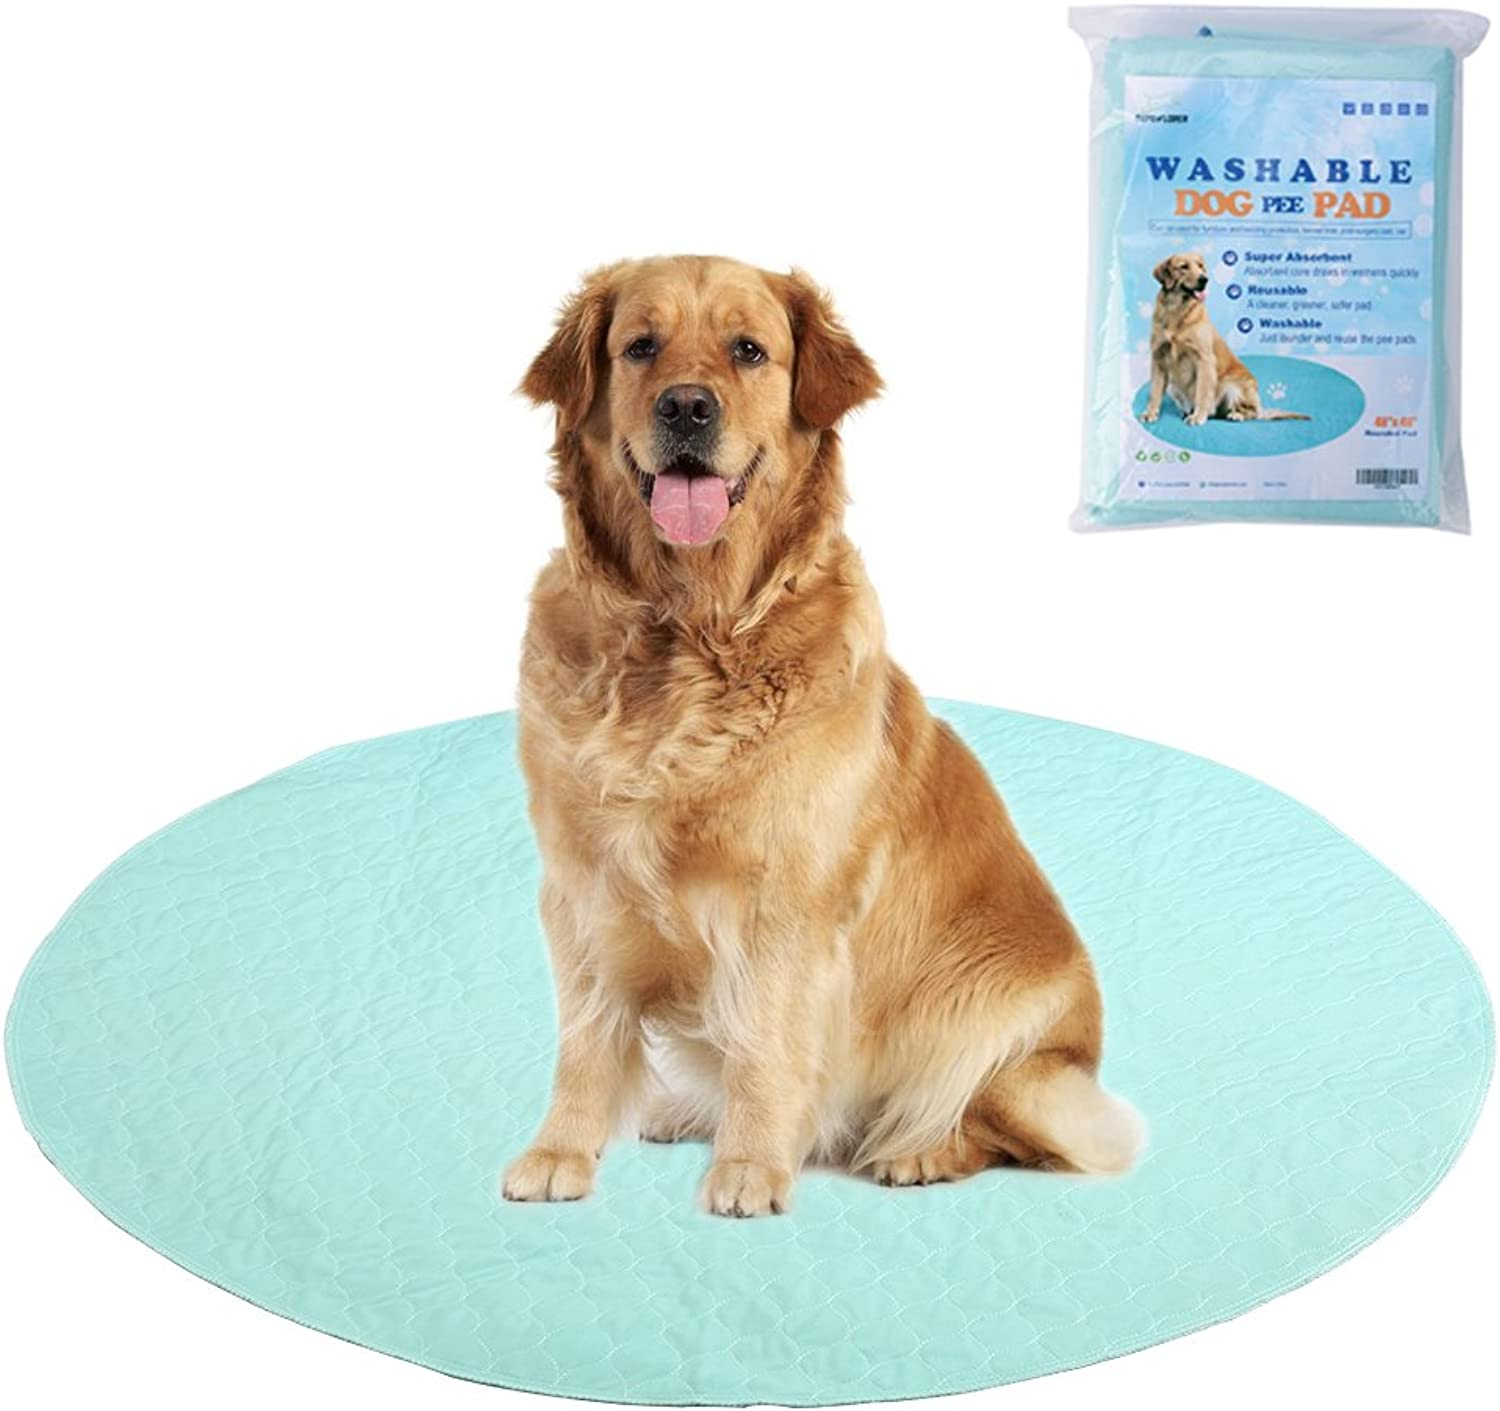 EXPAWLORER Washable Pee Pads for Dogs  Reusable Round Pad for Puppy Playpen Pen, Puppy Housebreaking Training, Travelling and Whelping, 48 x48